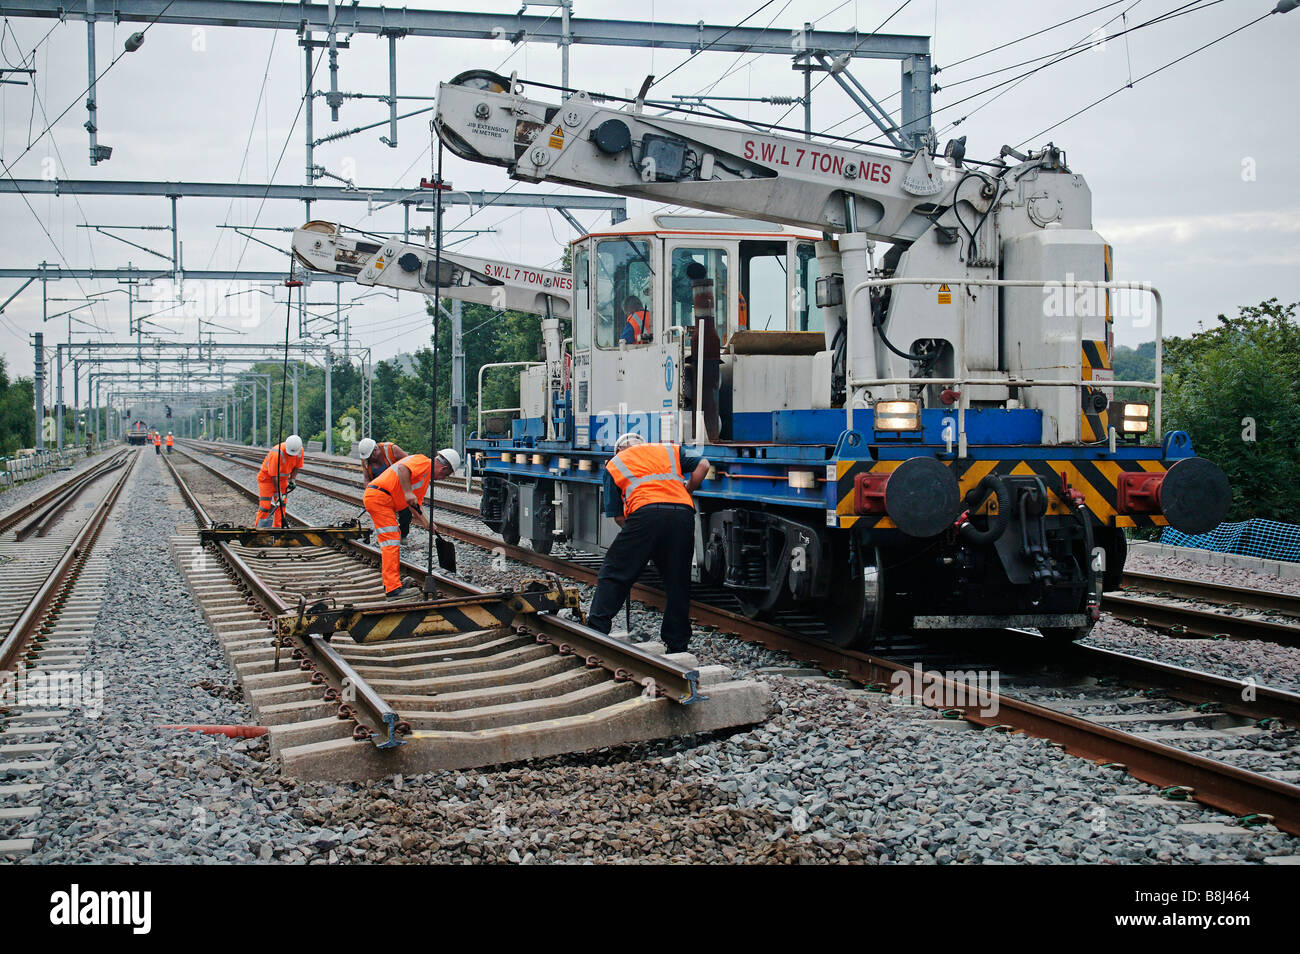 Self Propelled Cart >> Self-propelled twin-jib railway crane prepares to lift redundant Stock Photo: 22526060 - Alamy